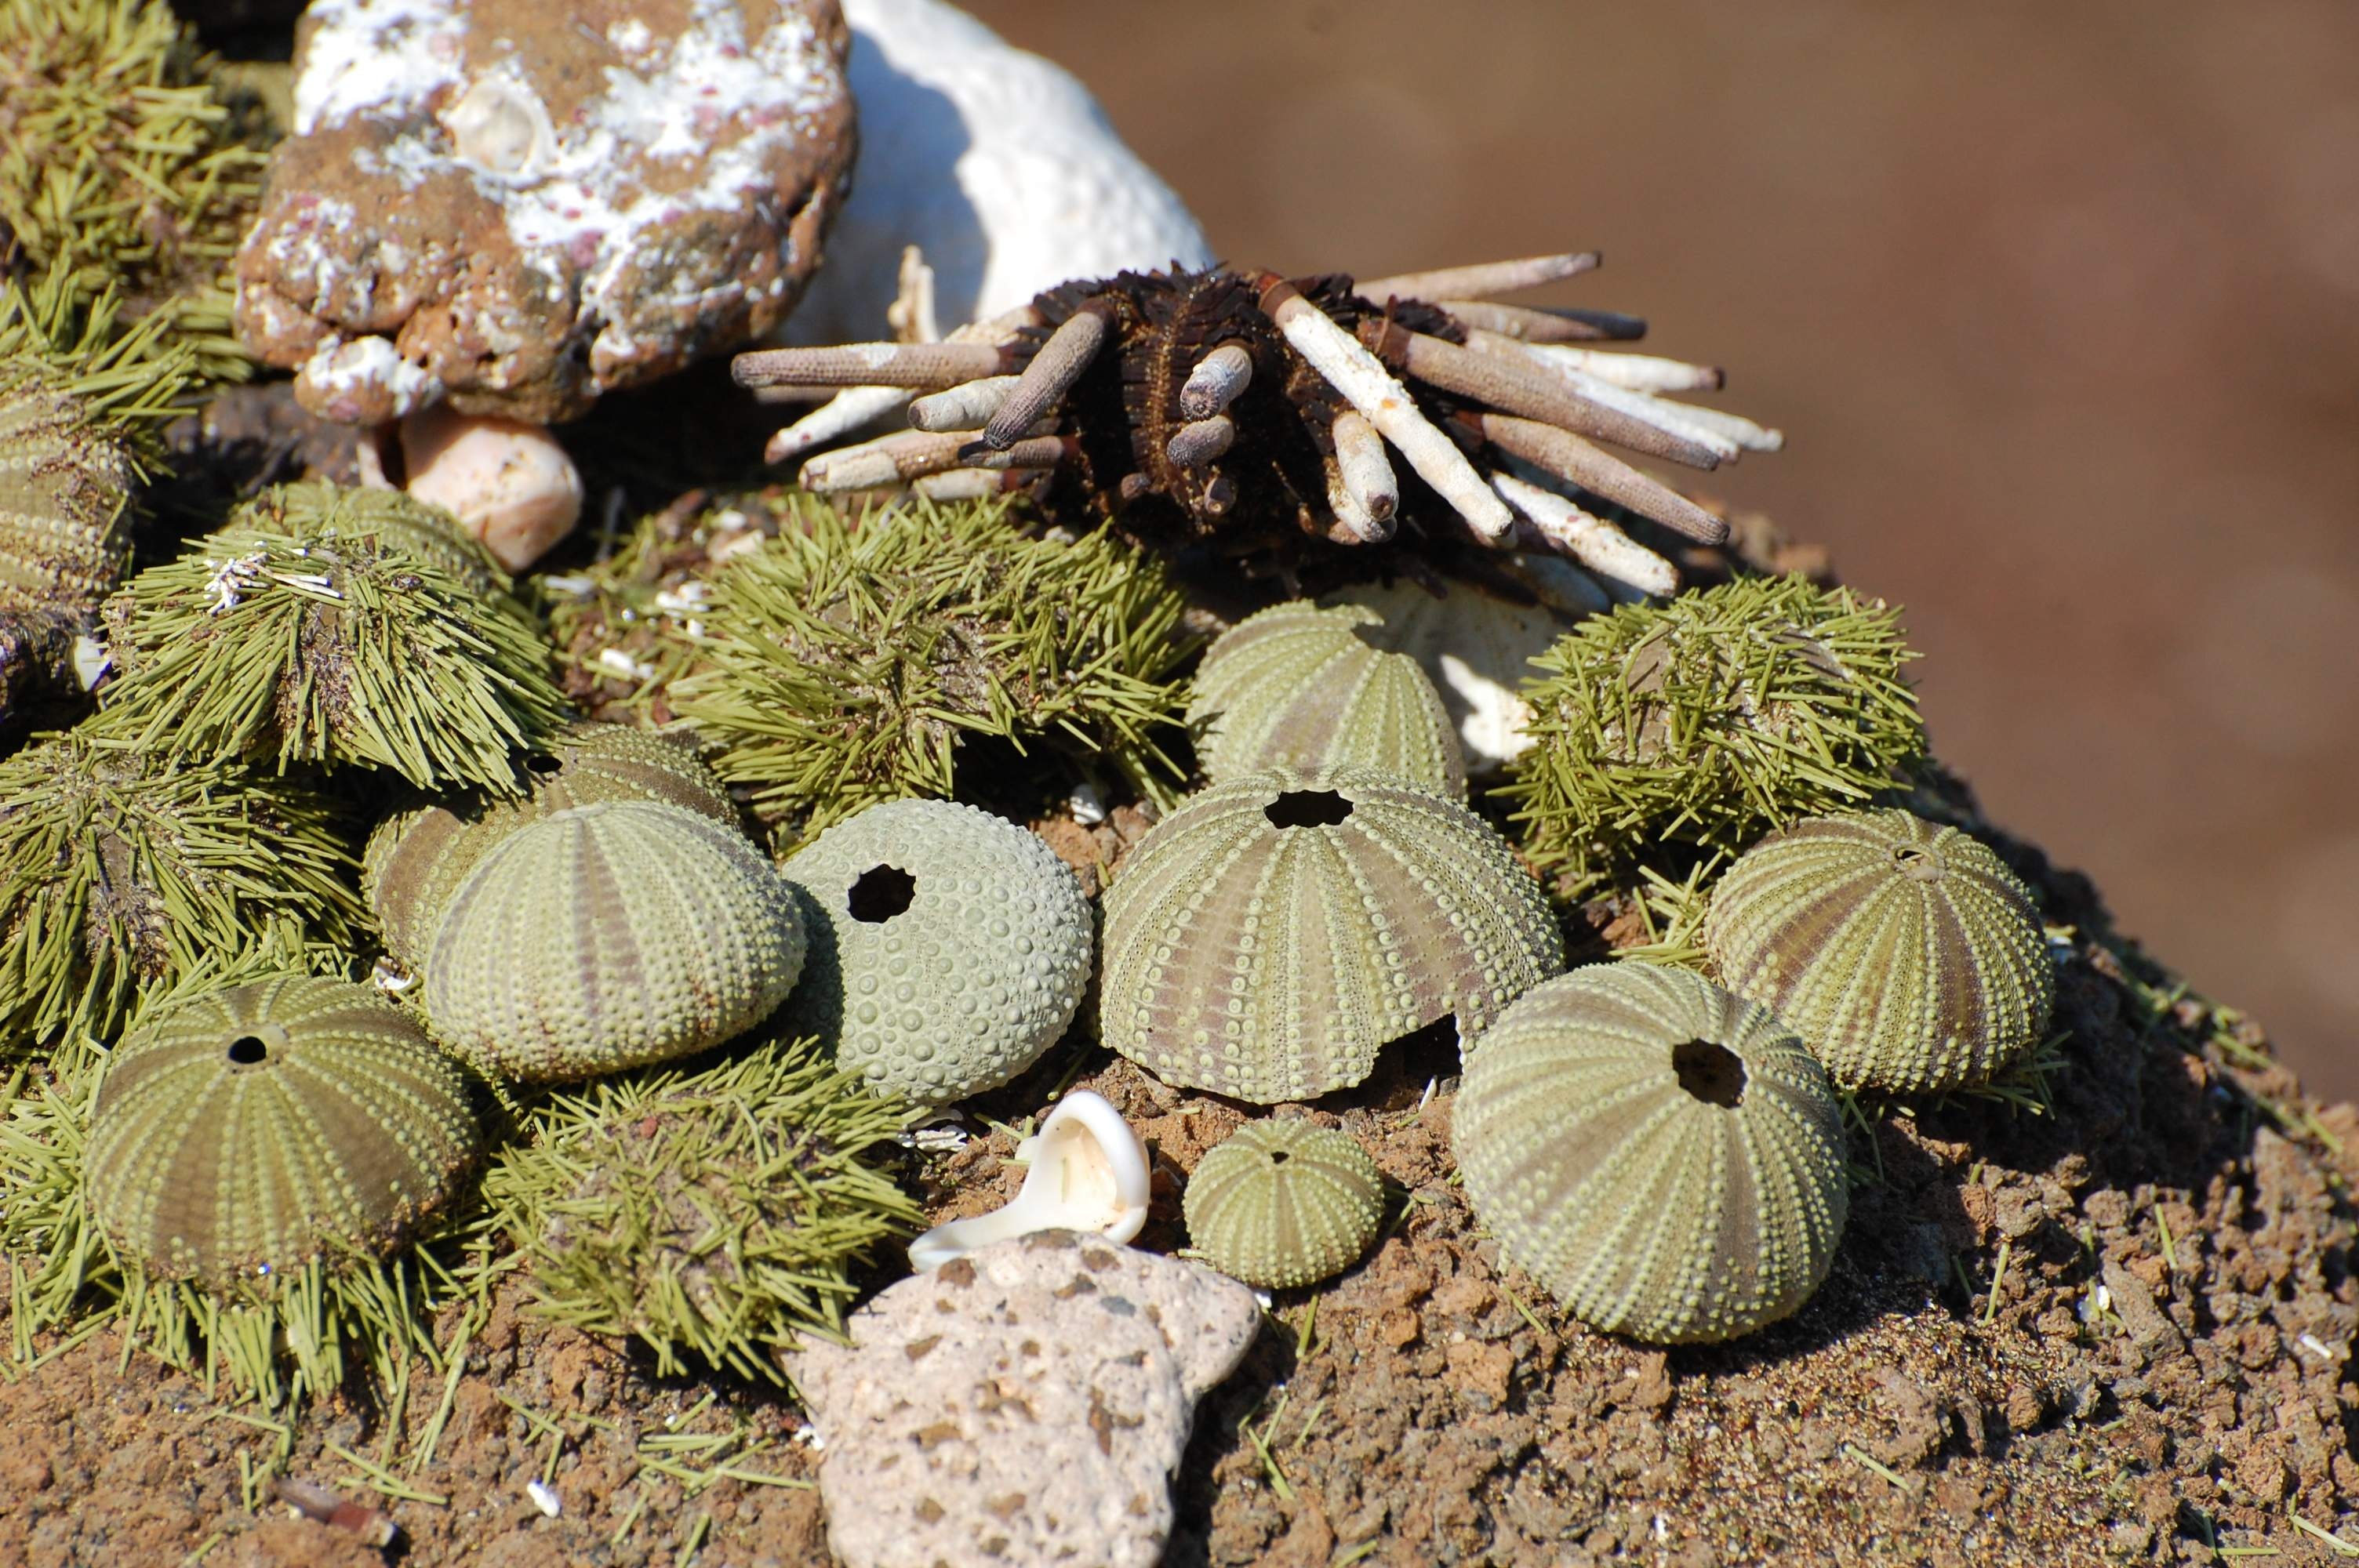 Sea Urchins and echinoderms.